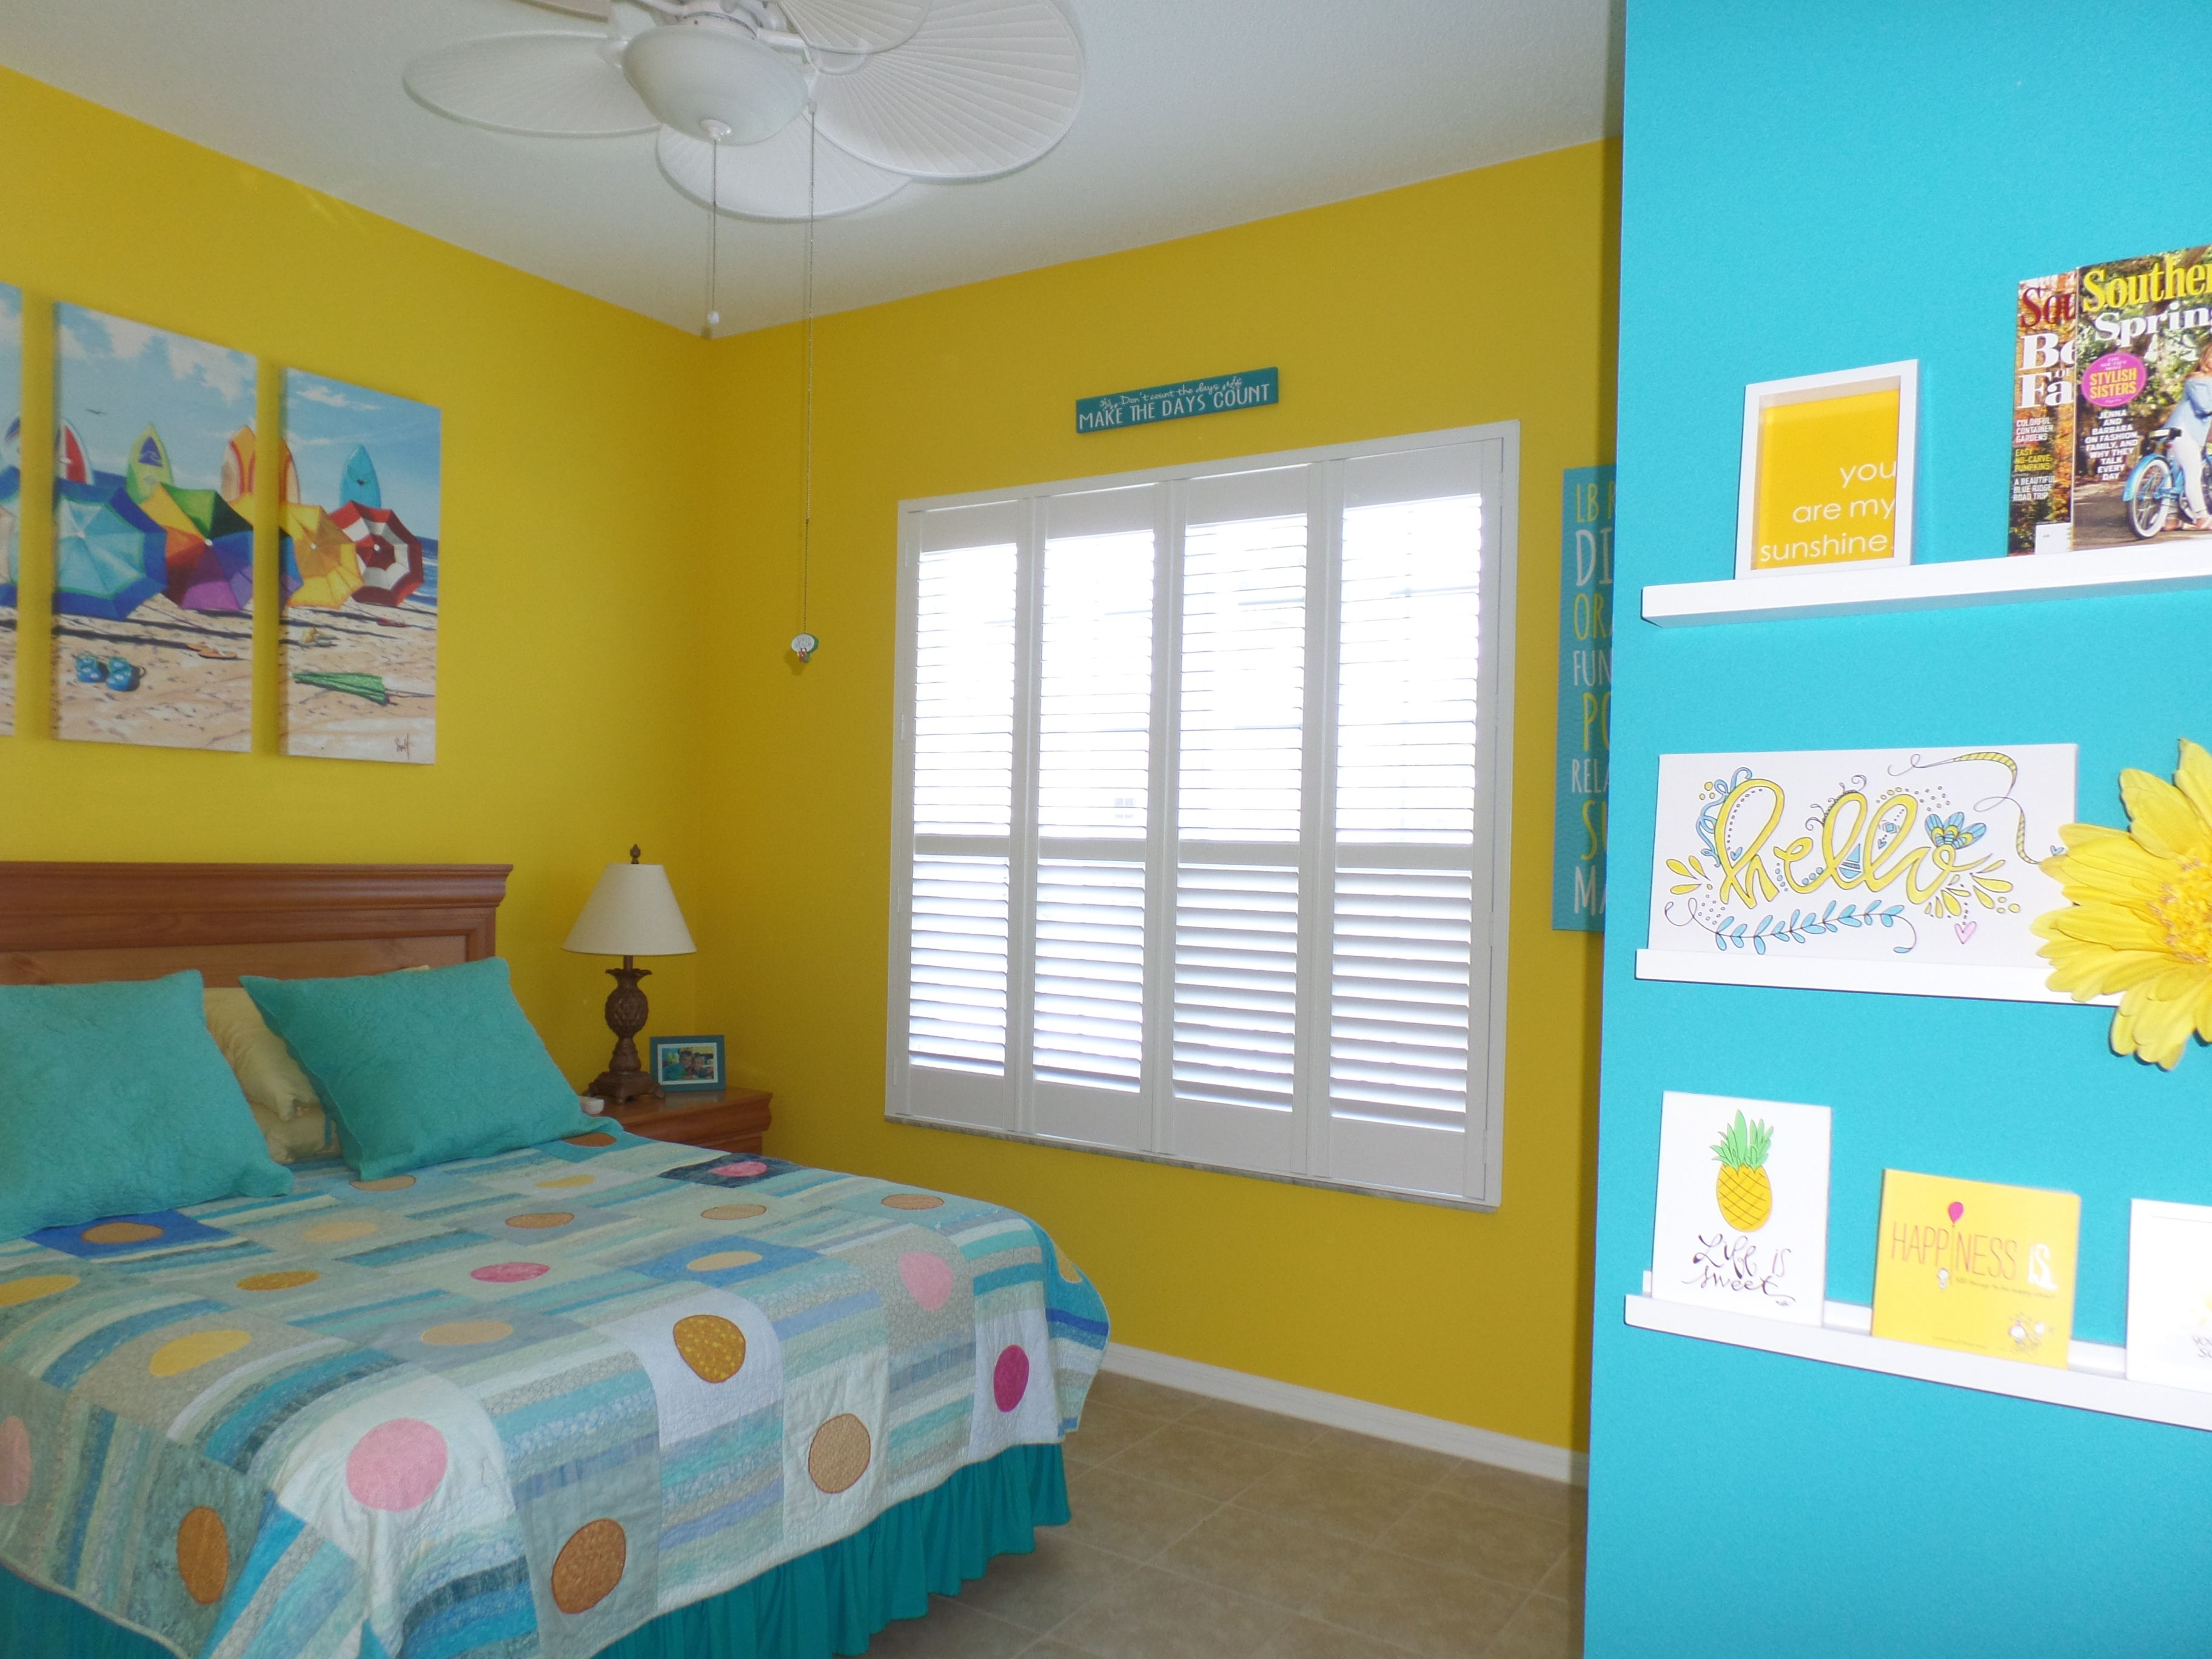 Perfect for Florida! Bright Florida Decor, Paint colors are Sherwin ...